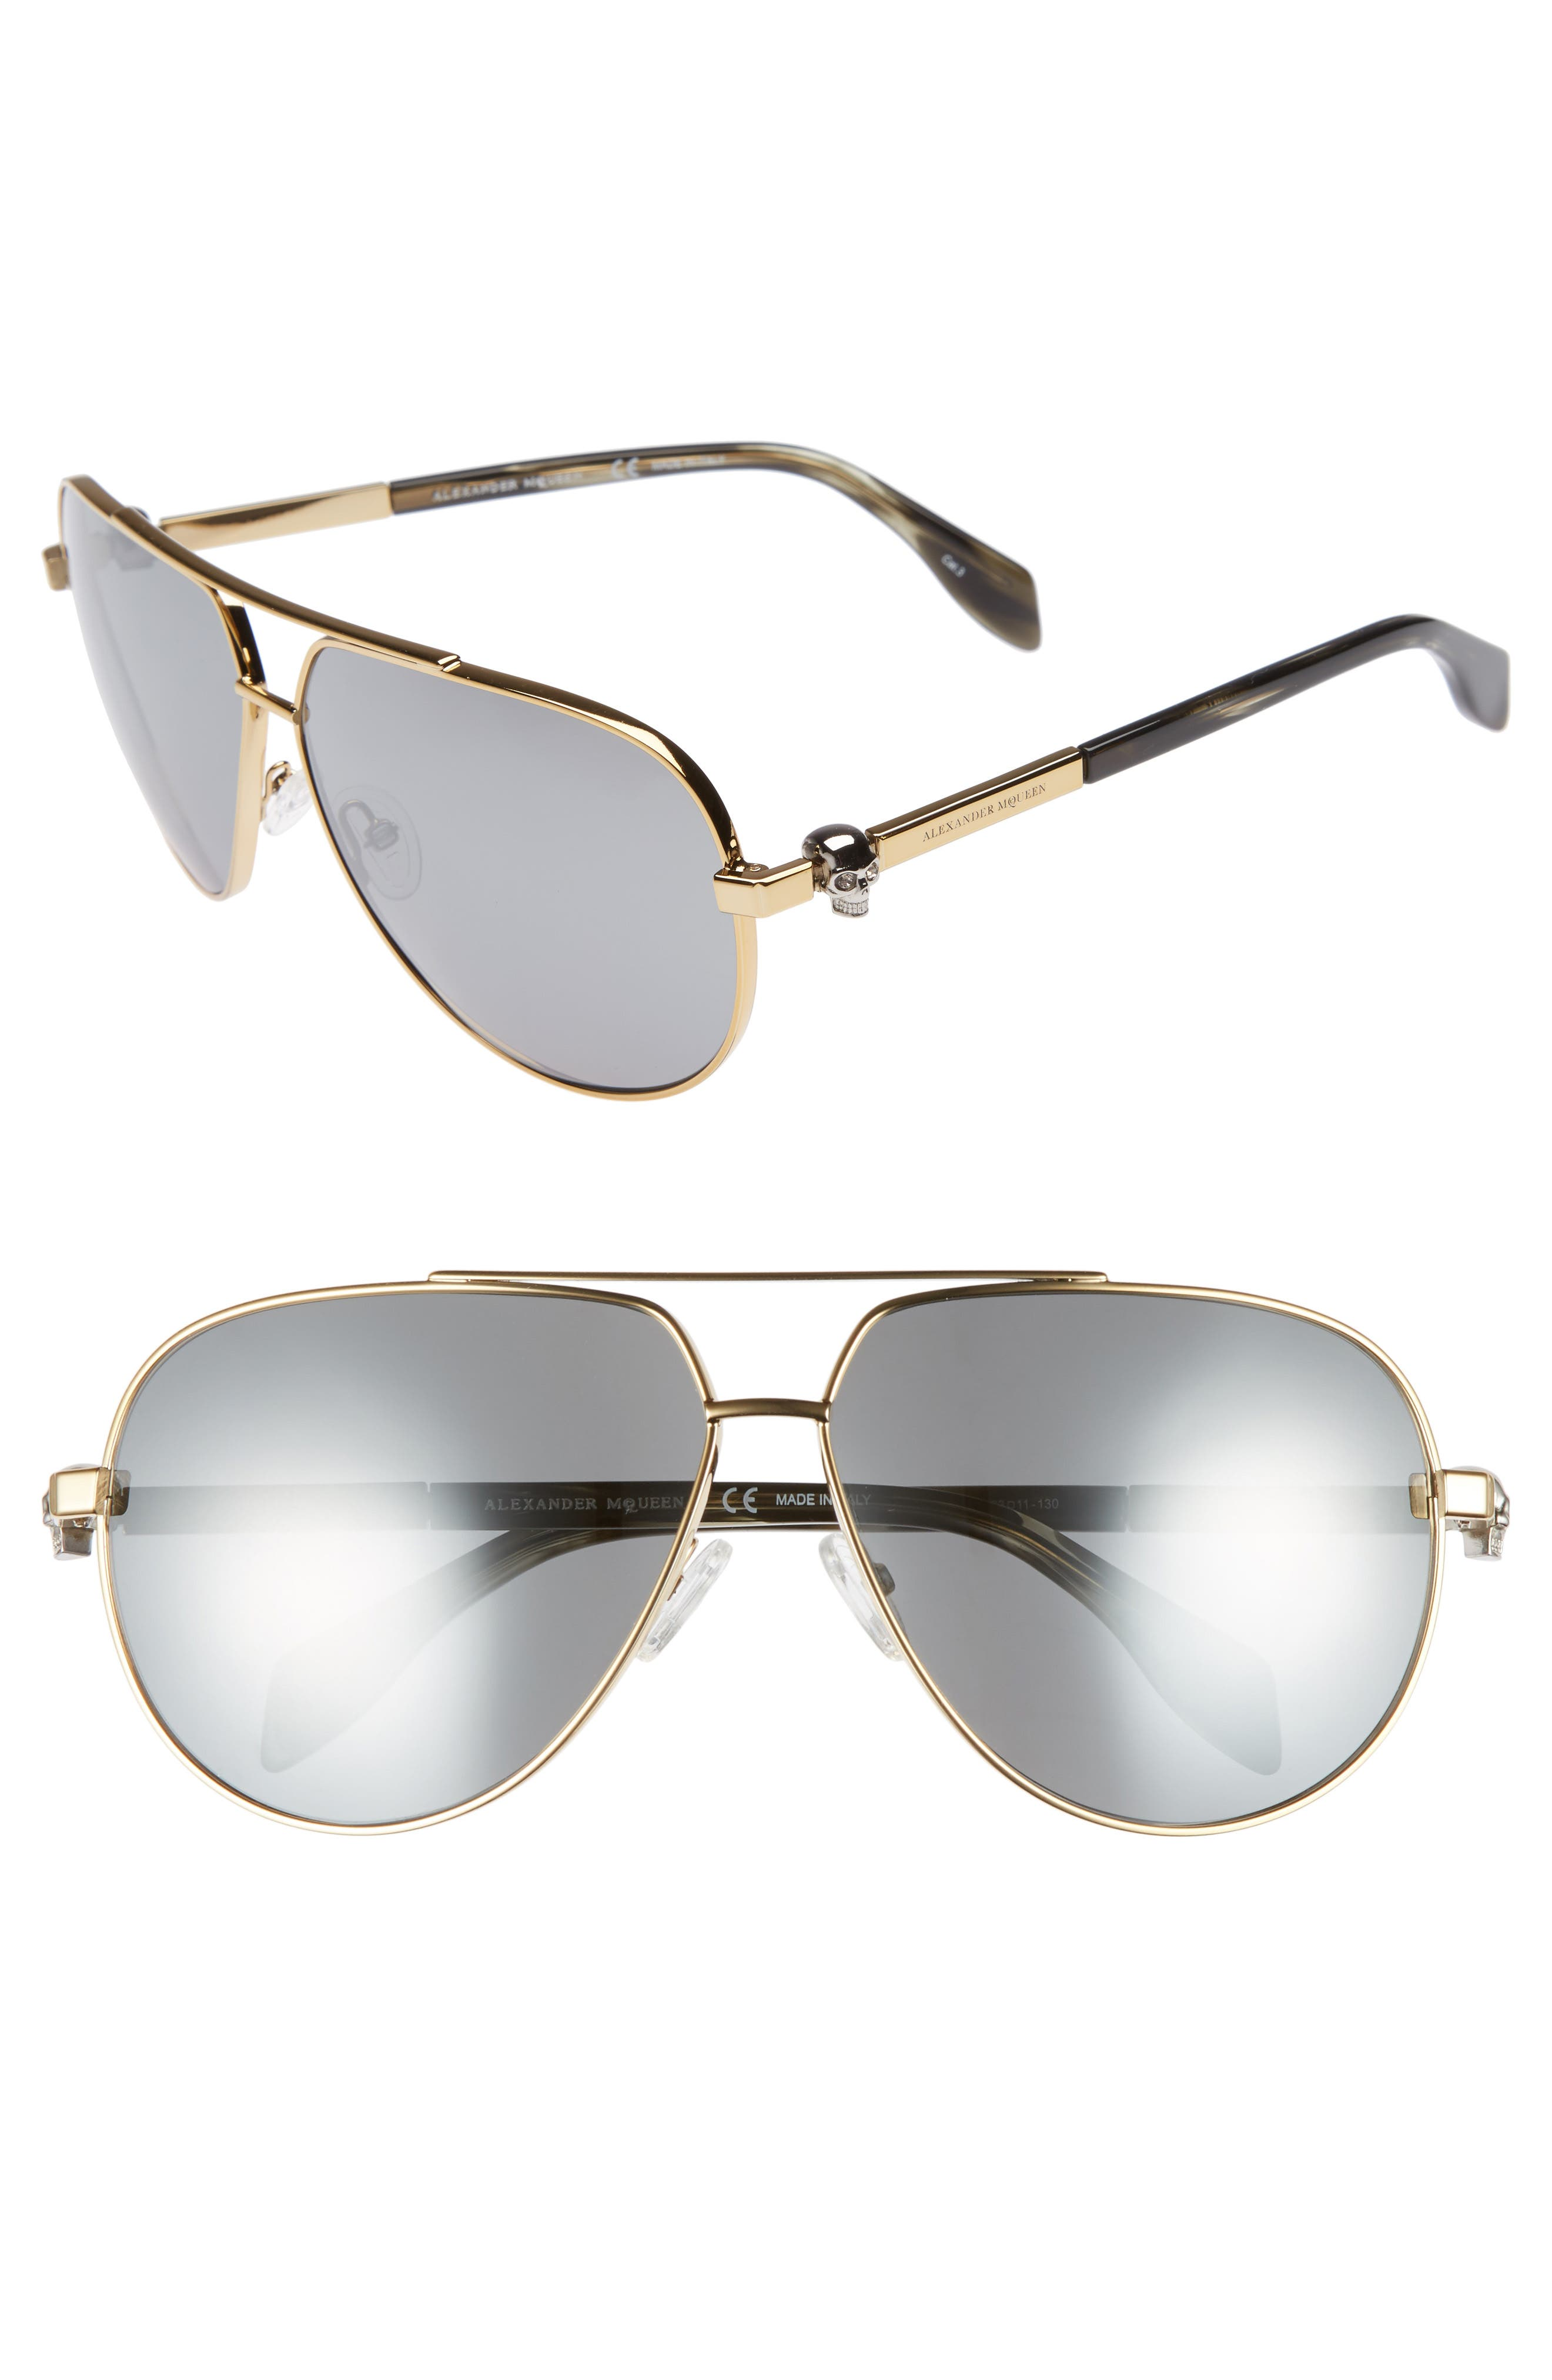 63mm Aviator Sunglasses,                             Main thumbnail 1, color,                             Gold